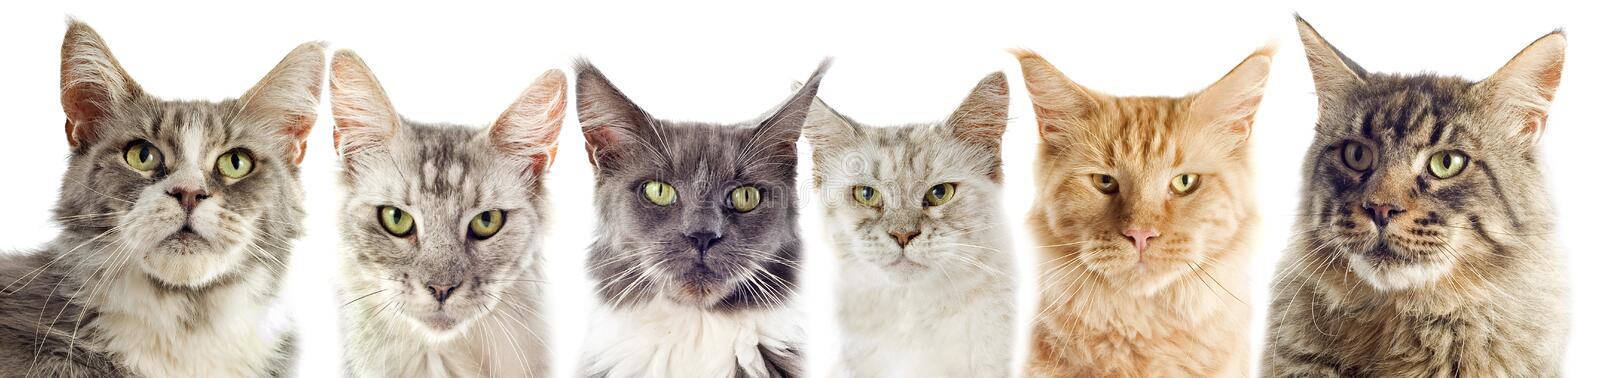 Maine coon cats. Group of maine coon cats on a white background royalty free stock photo